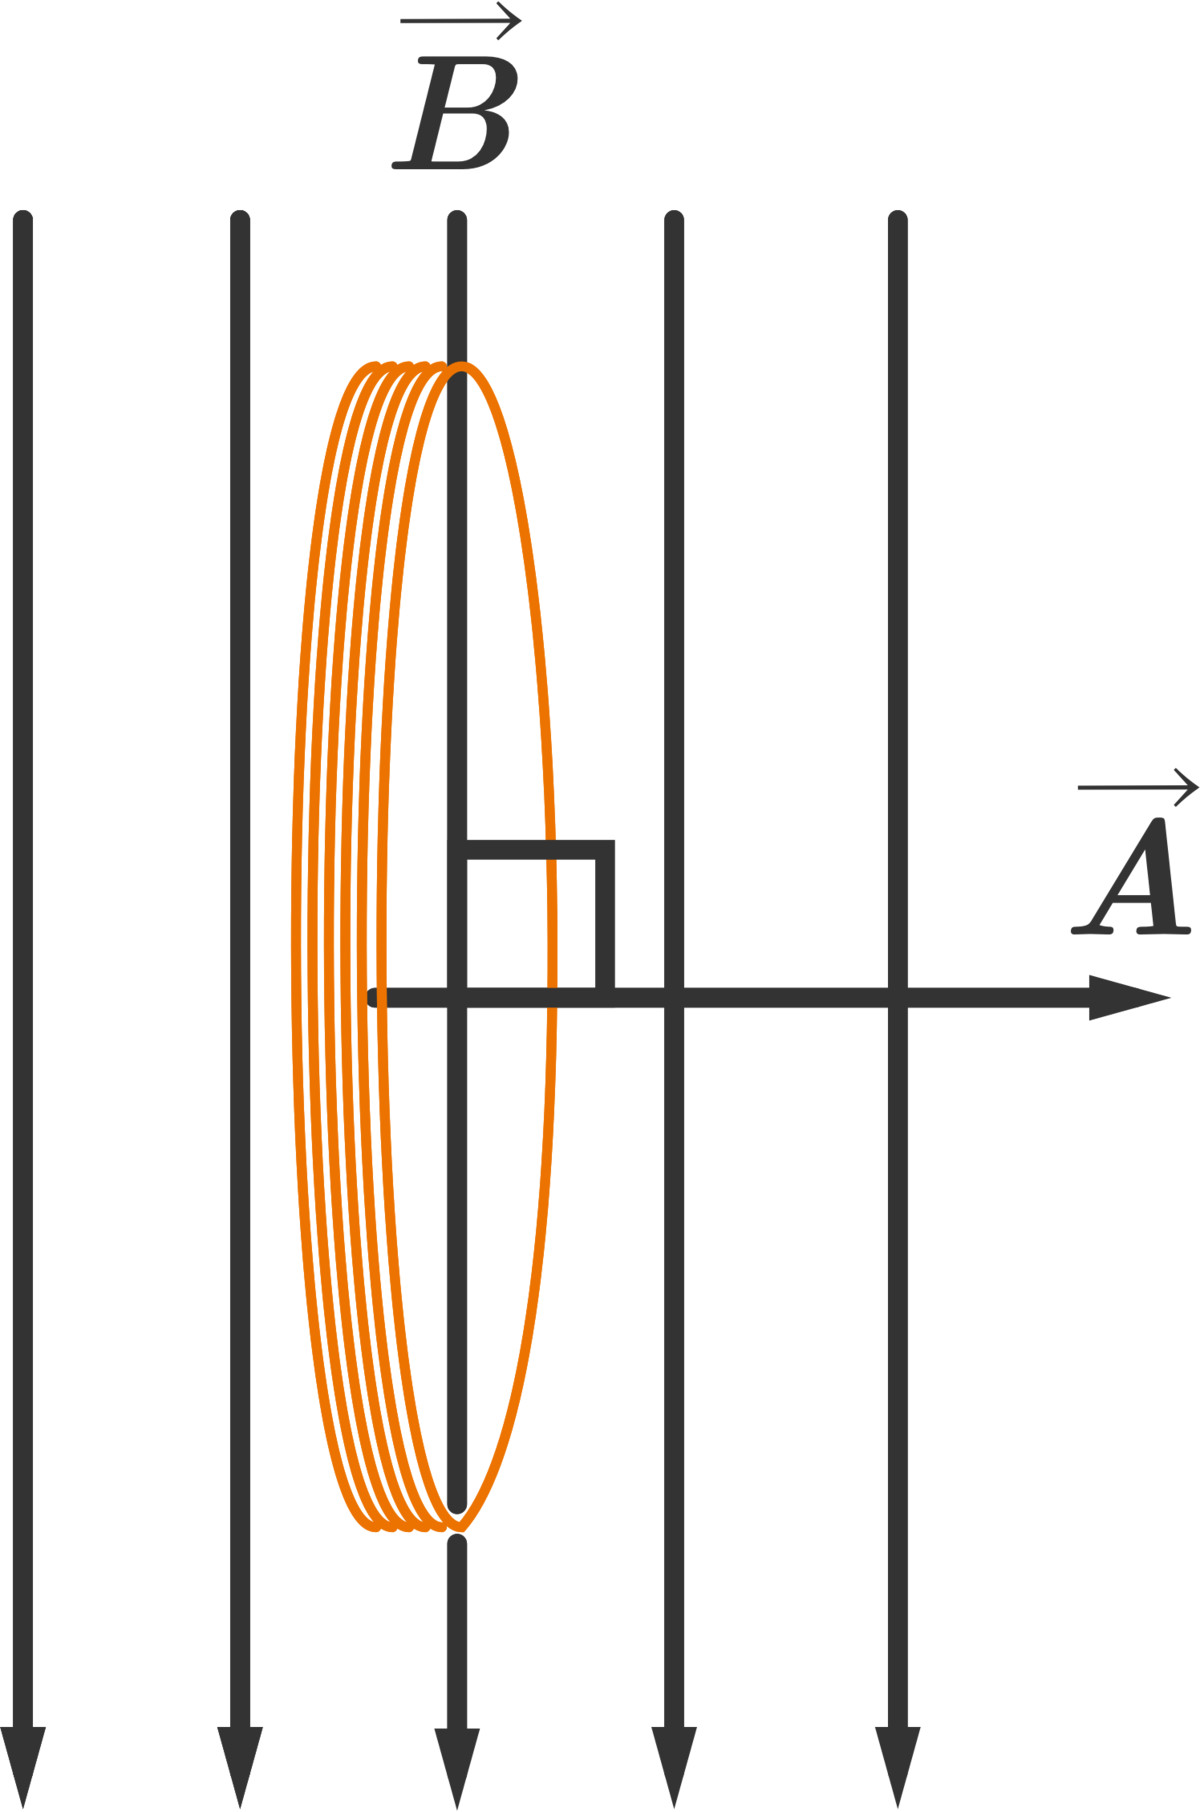 A coil of wire in a vertical magnetic field. The area vector \(\vec{A}\) for the plane of the wire is perpendicular to the field, so there is no magnetic flux.